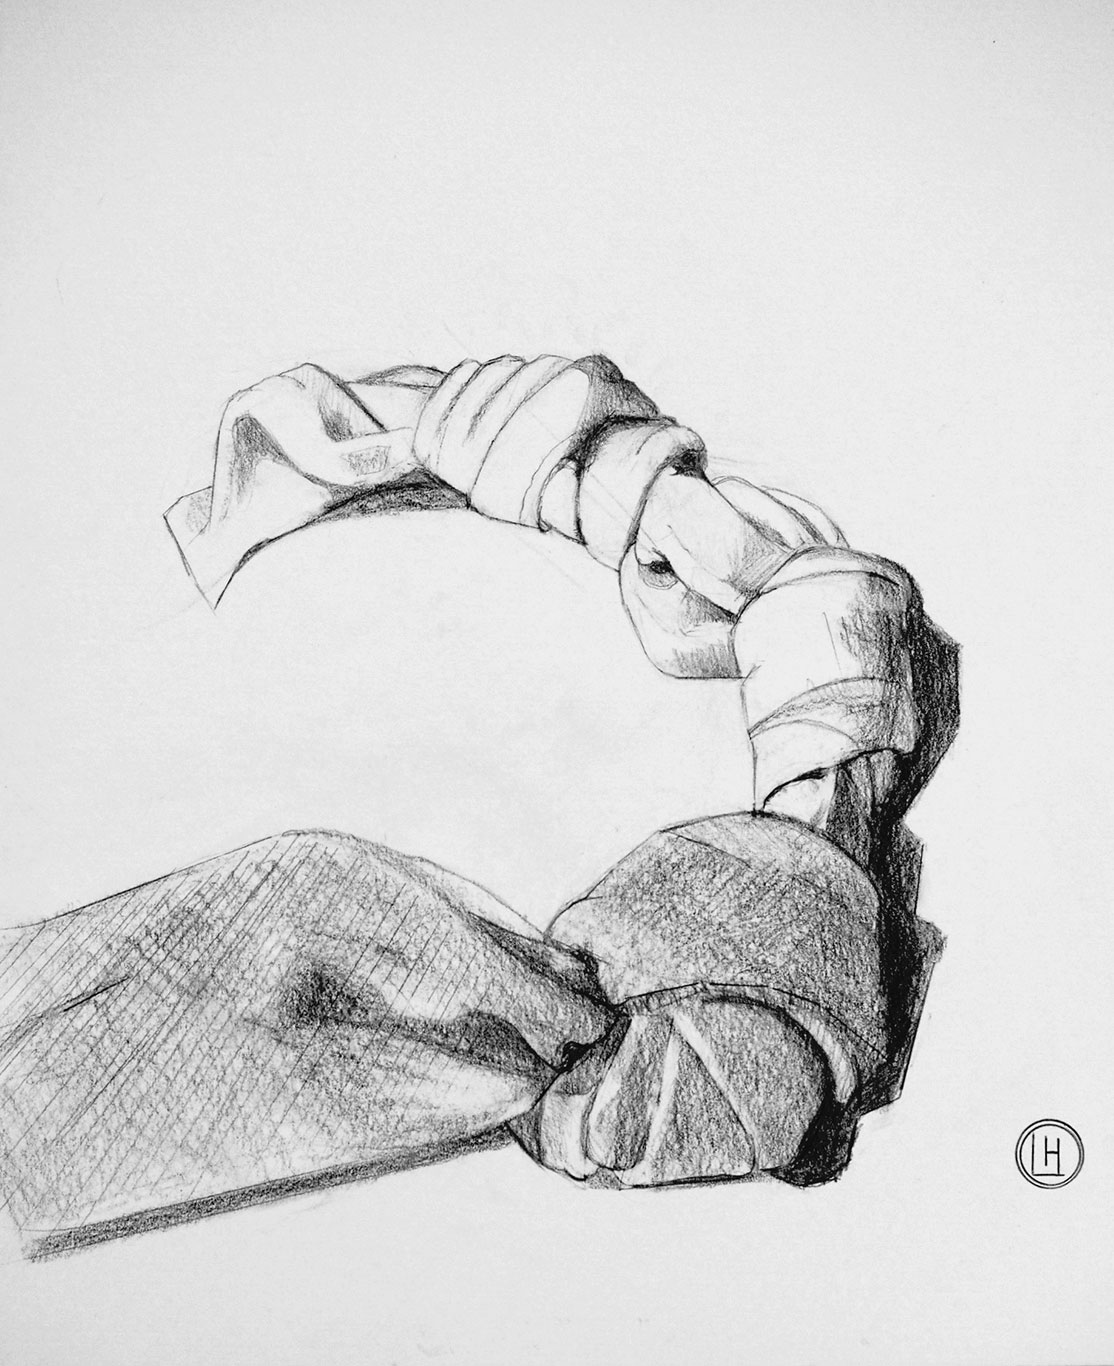 Graphite Drawing, Lee Hutt, USA